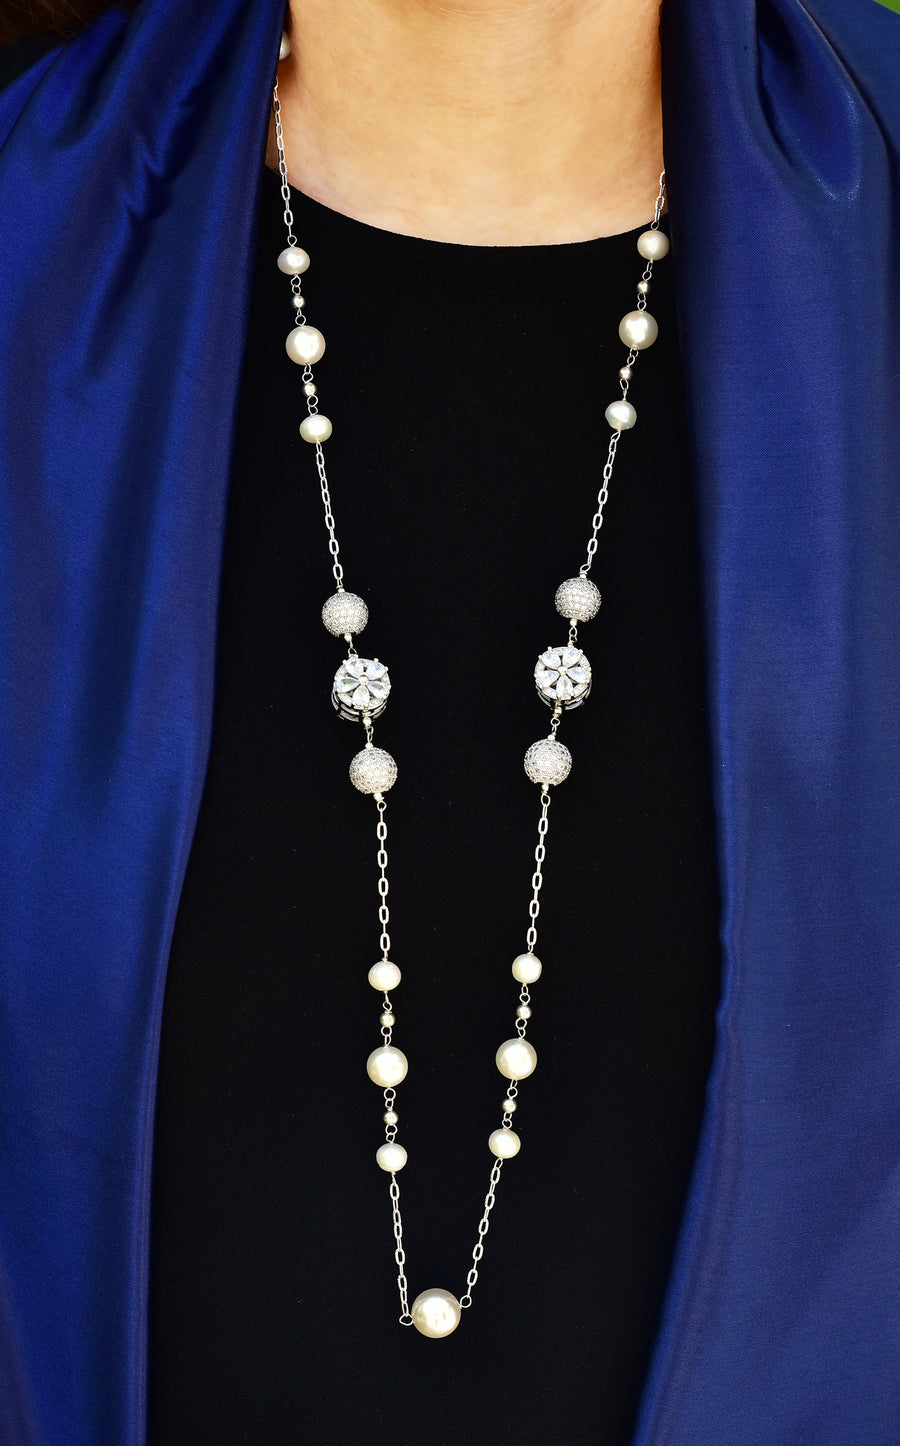 Embedded Flower and Ball Cubic Zirconia Pearl Necklace Silver Lifestyle